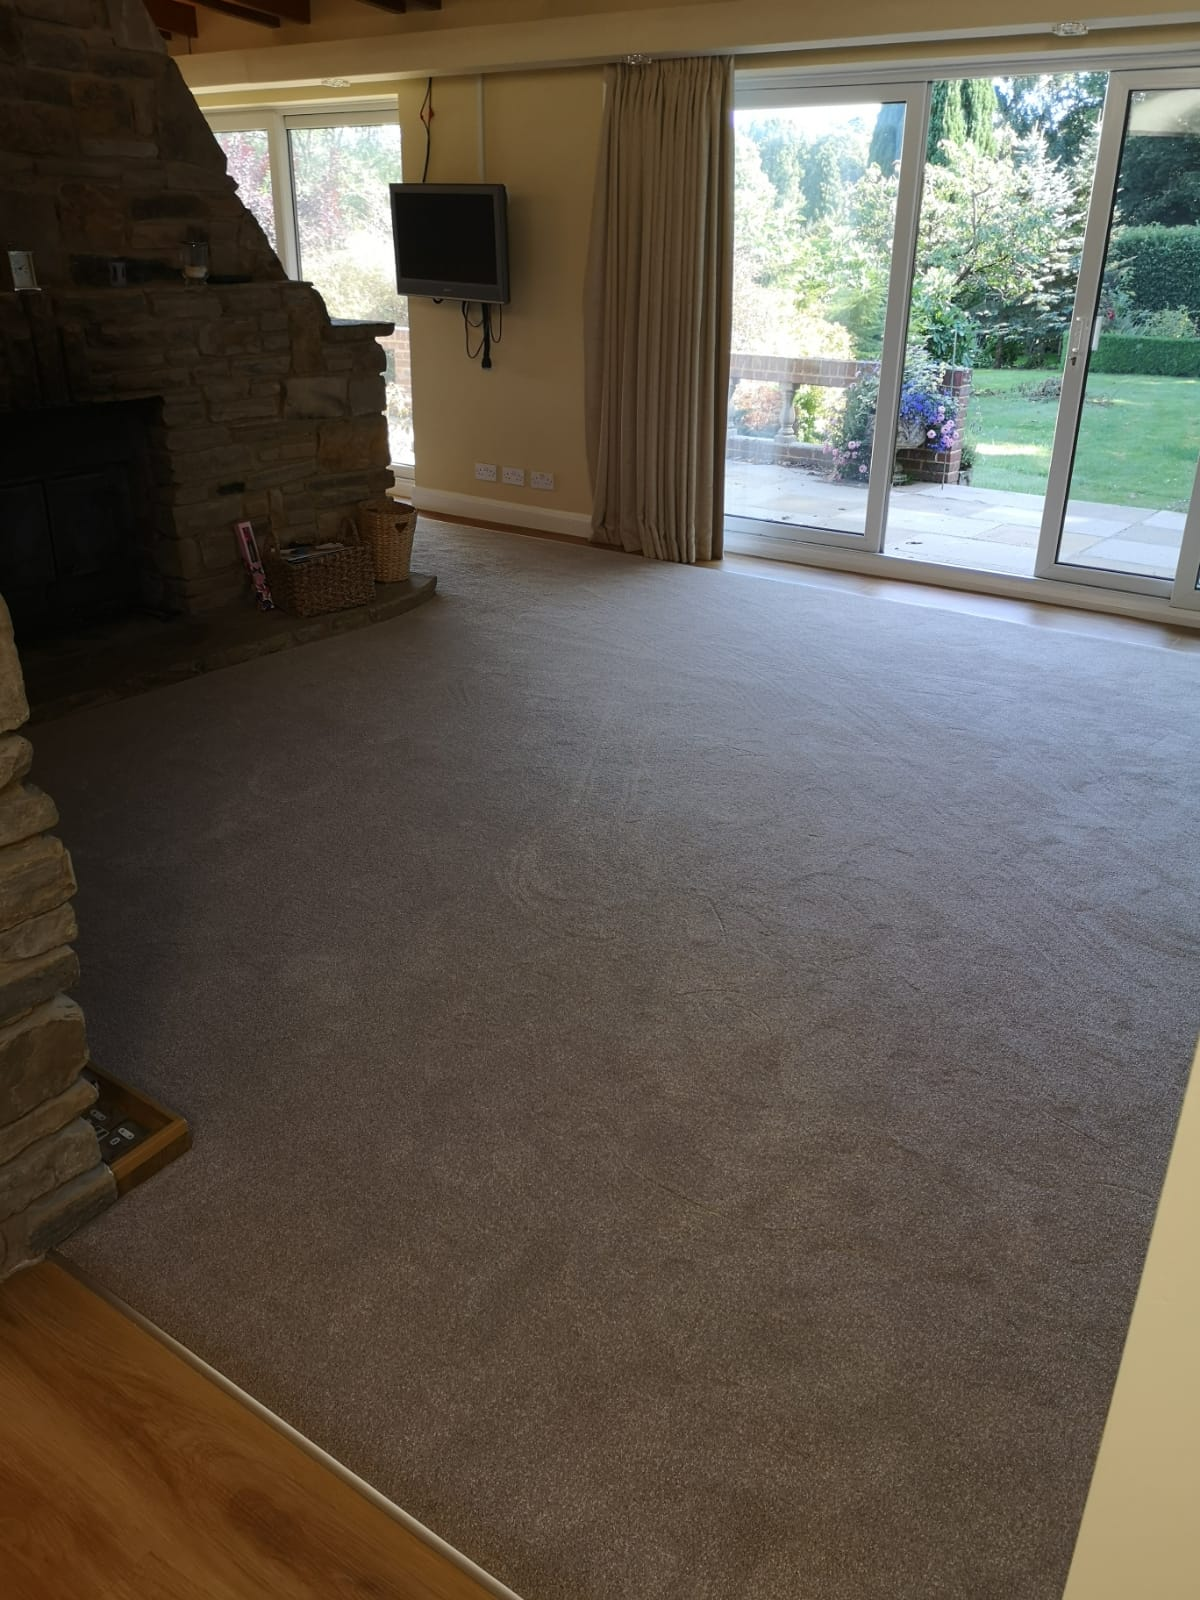 Previous Work from Melvin Head Carpets